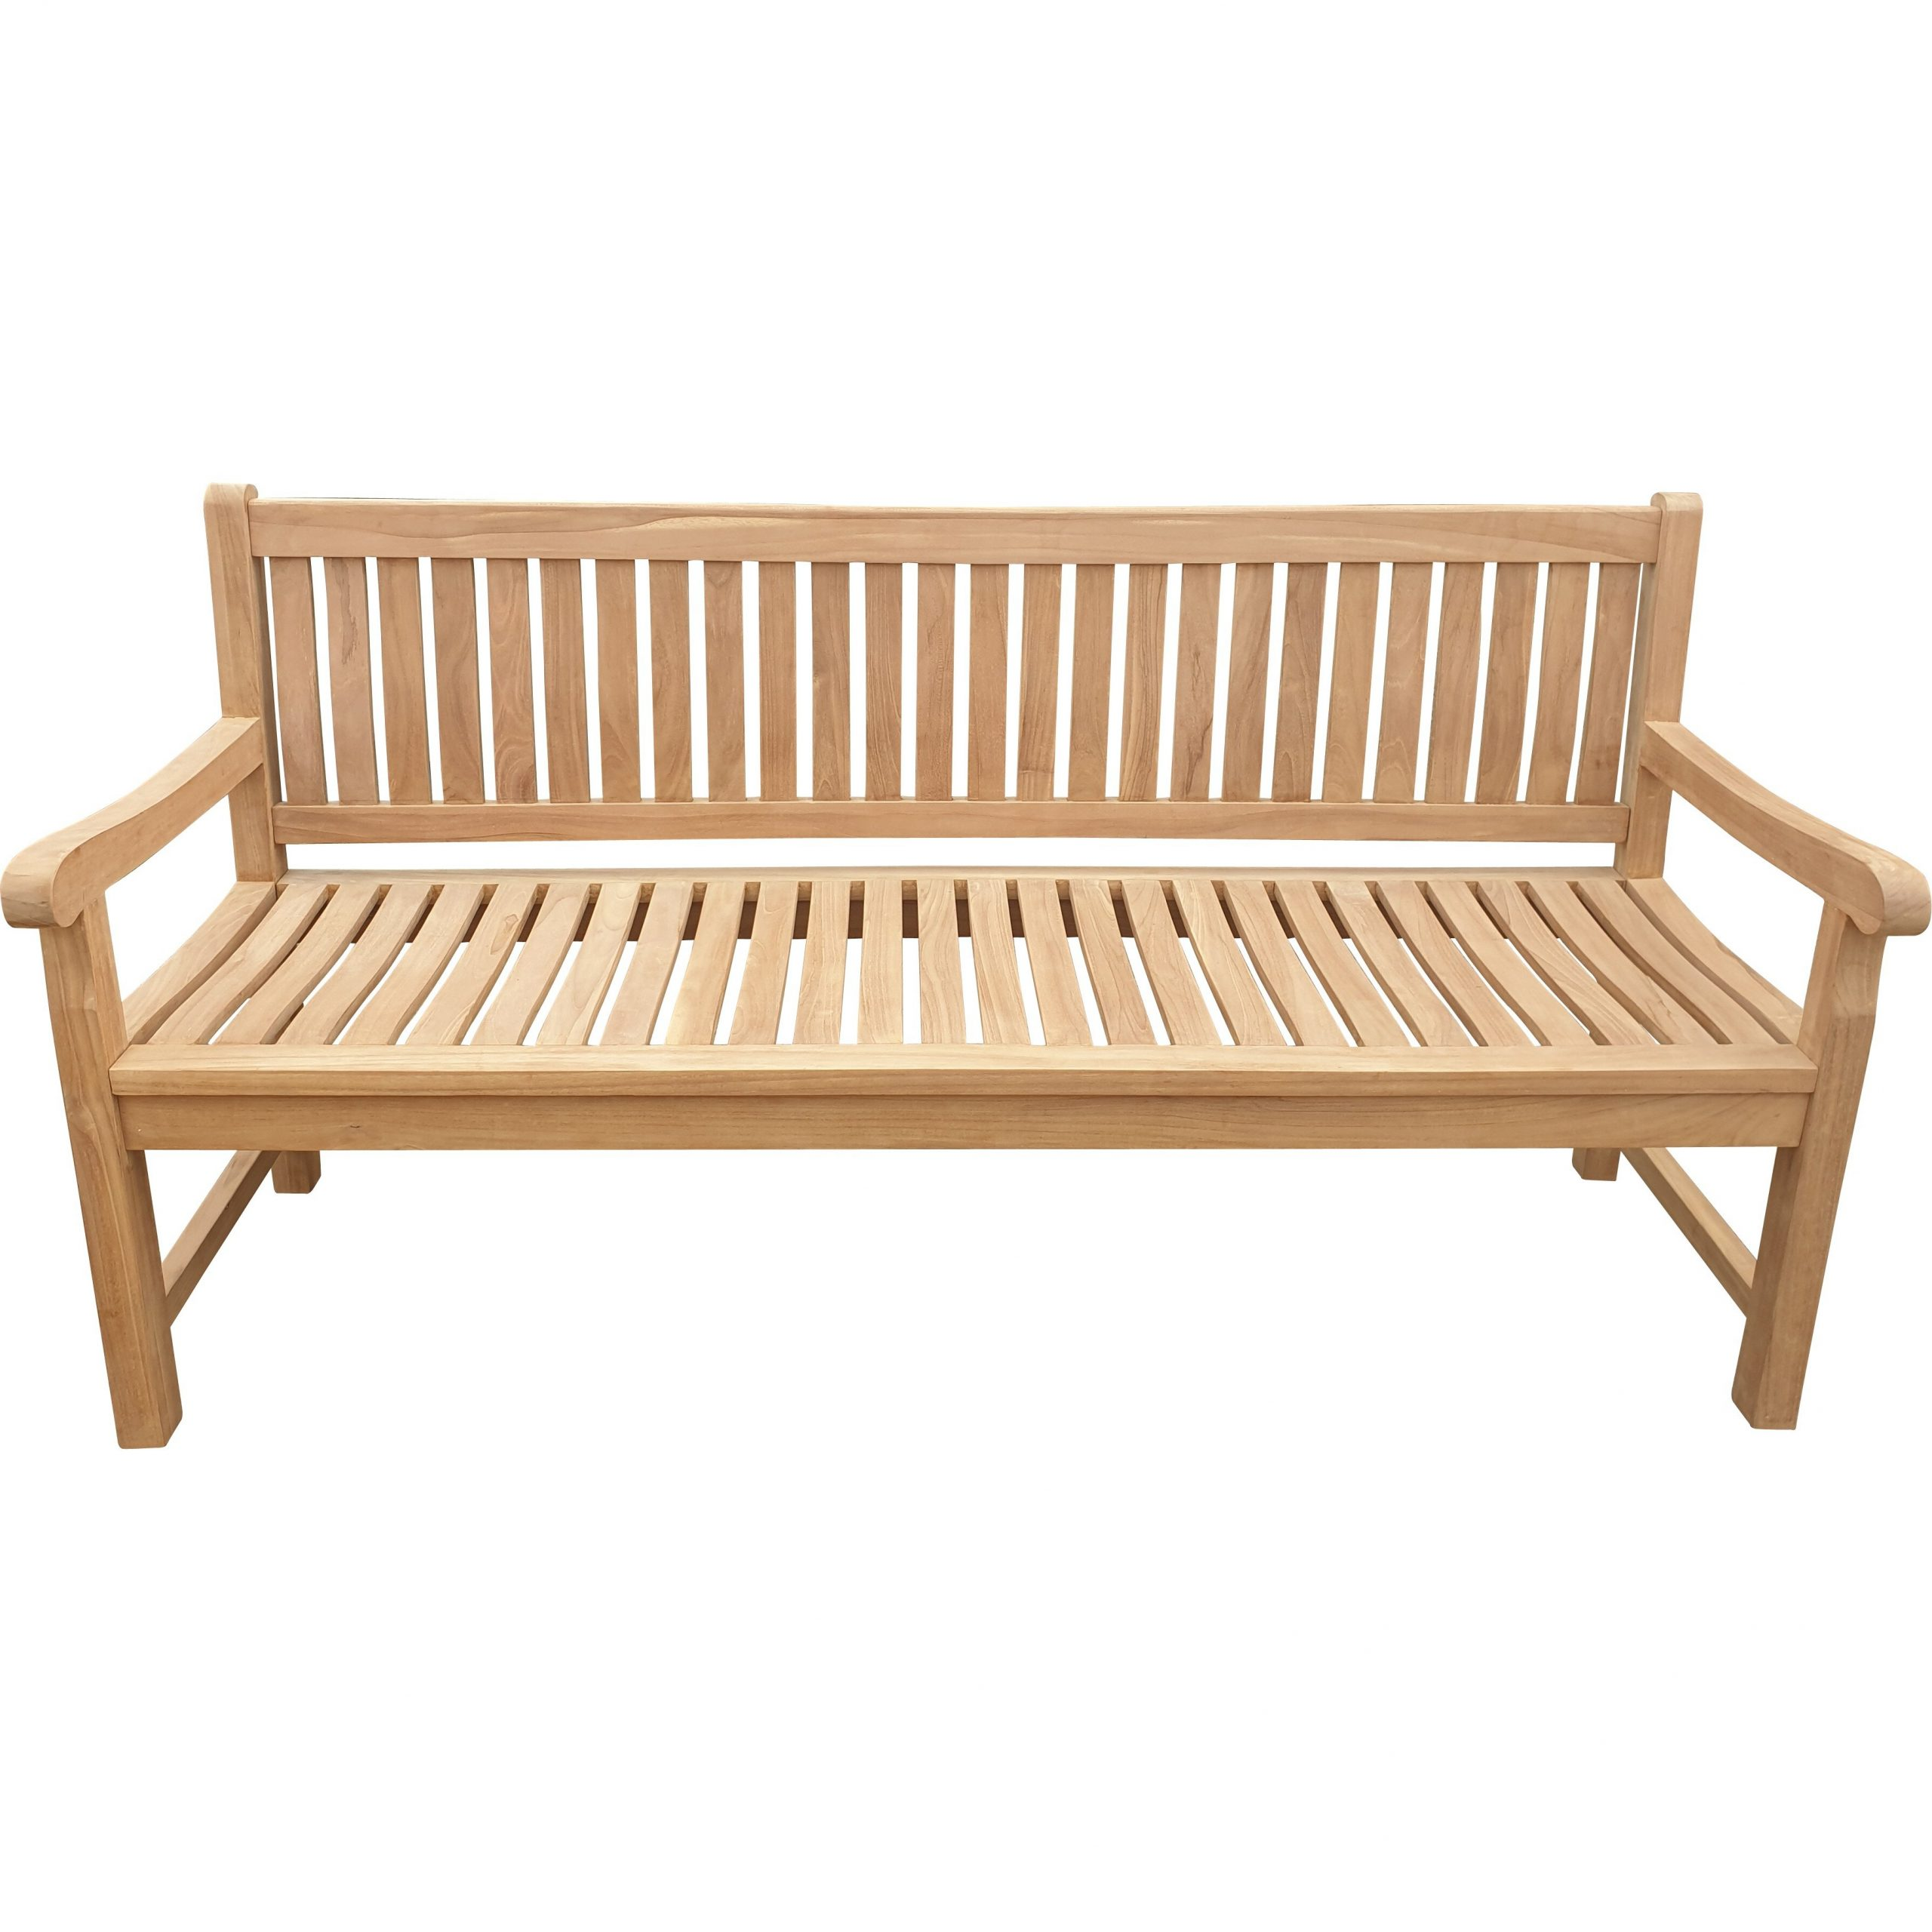 Preferred Casson Teak Garden Bench Pertaining To Wallie Teak Garden Benches (View 3 of 30)